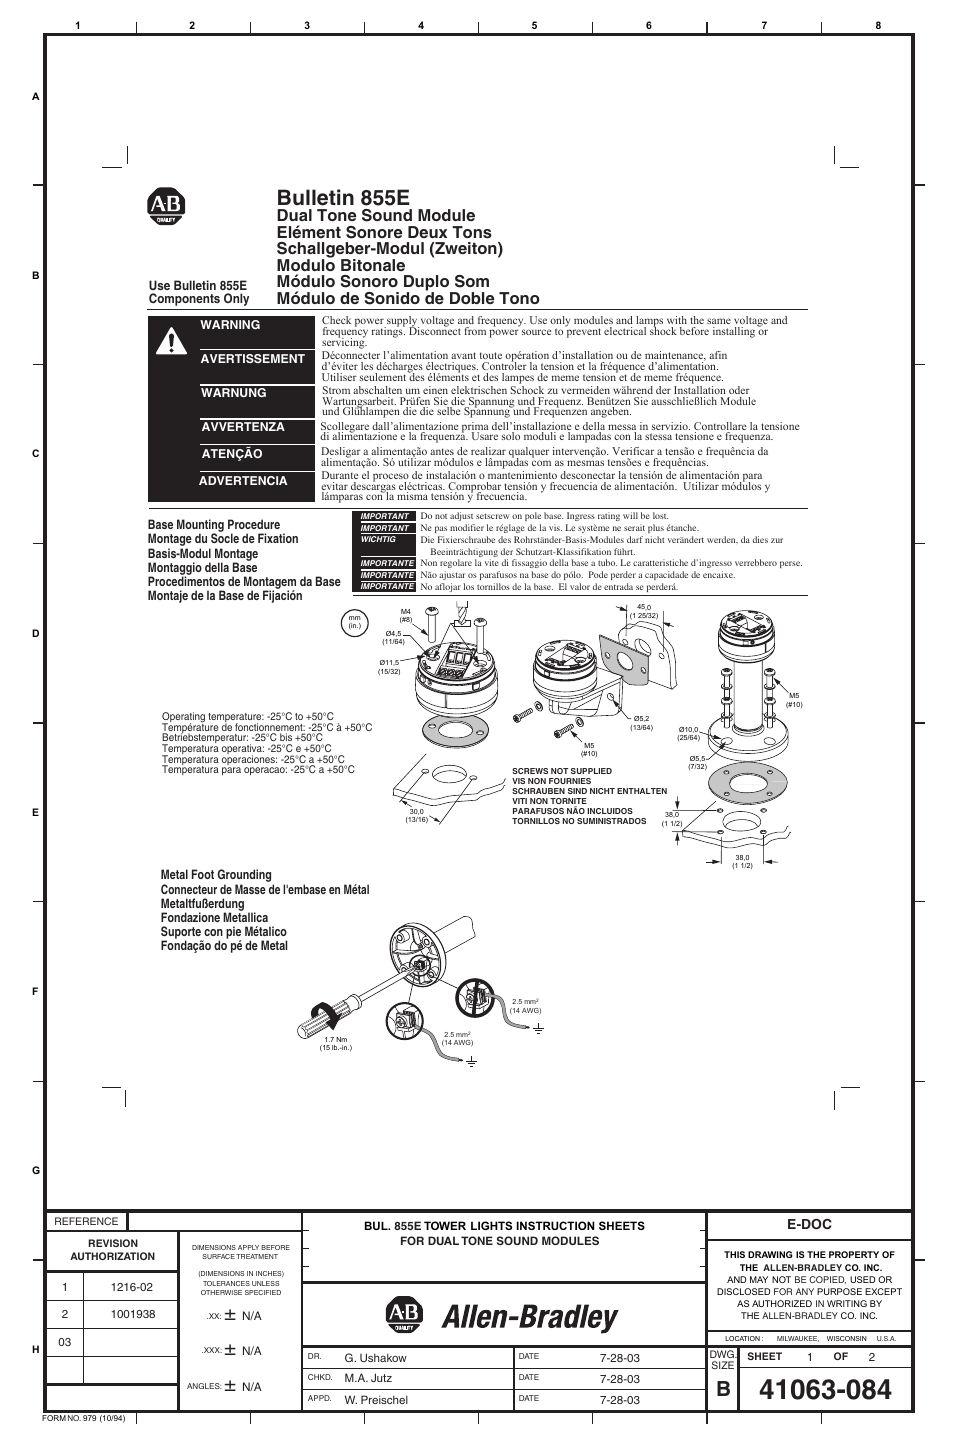 rockwell automation 855e _ dual tone sound module page1 rockwell automation 855e _ dual tone sound module user manual 2 855e bcb wiring diagram at eliteediting.co